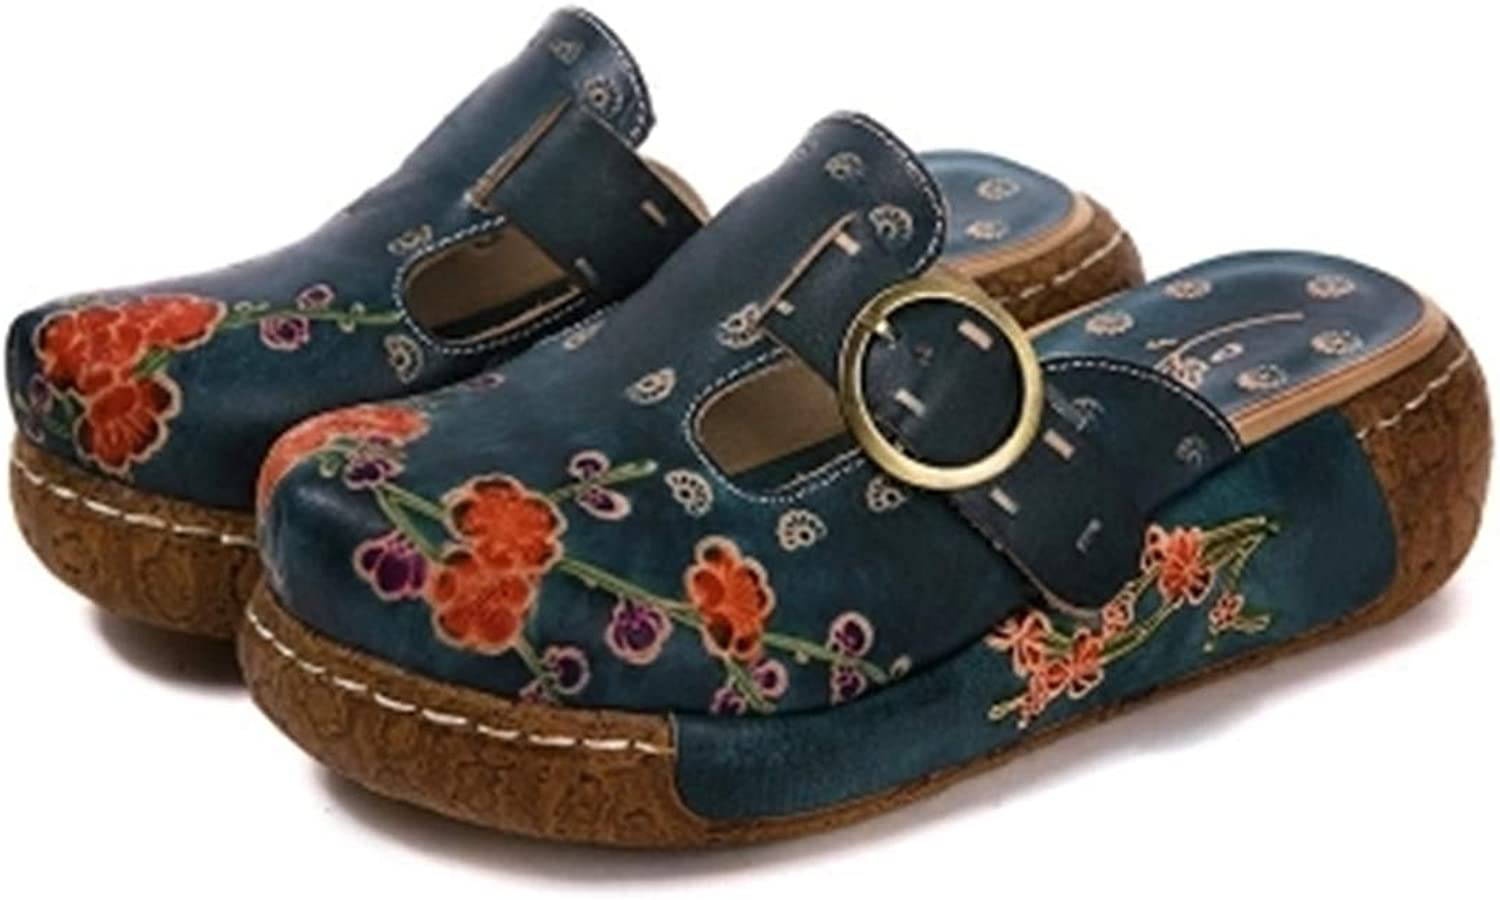 CrazycatZ Womens Leather Sandals, Mule shoes Slip-on Loafers Comfort Outdoor Wedged Slipper Clogs shoes